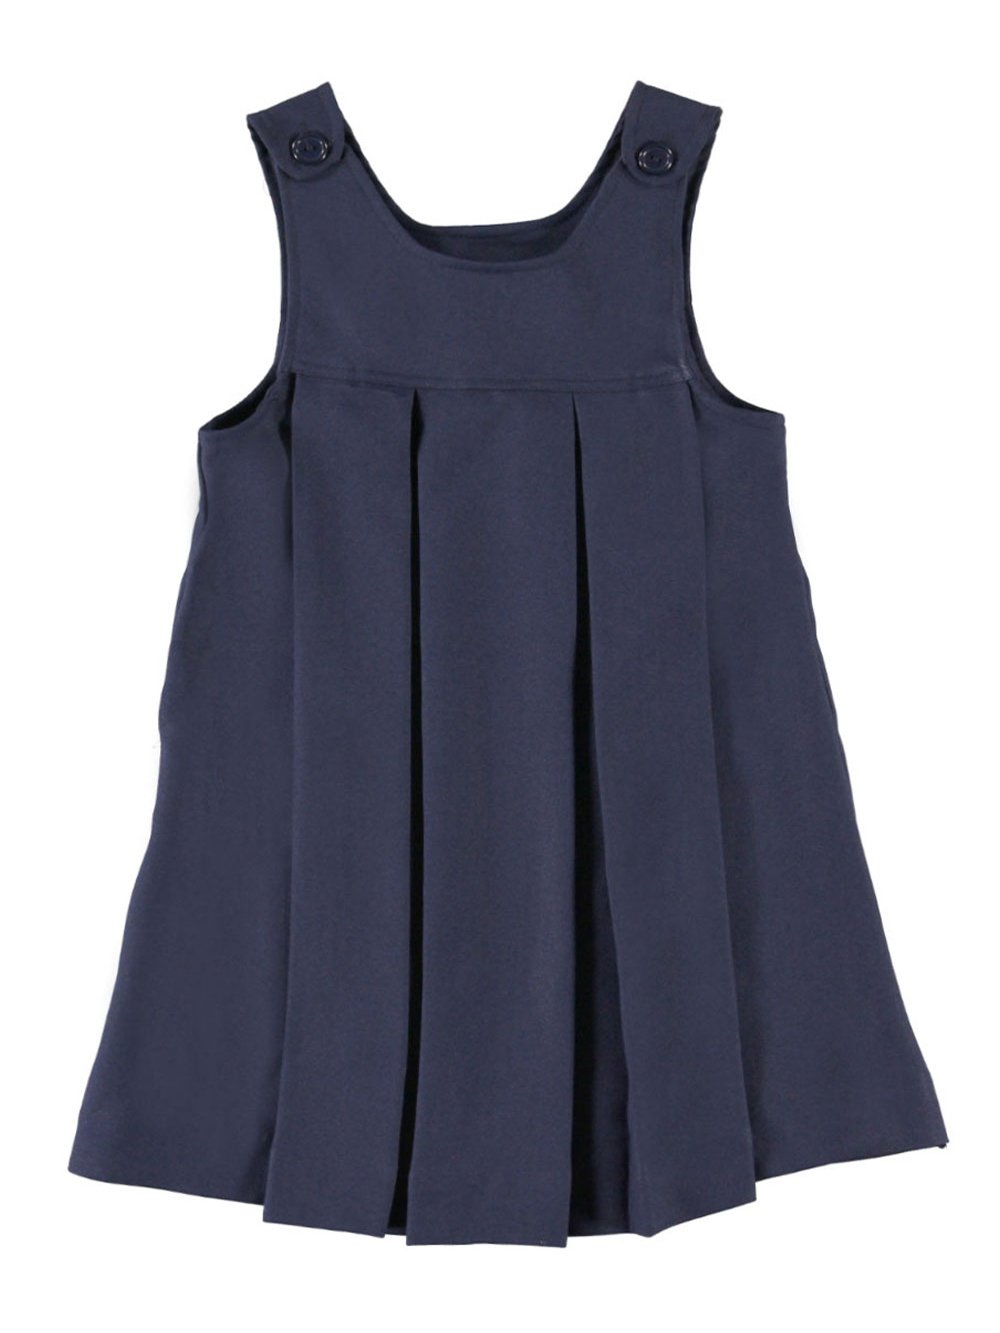 Cookie's Brand Big Girls' Button-Shoulder Jumper - navy, 7